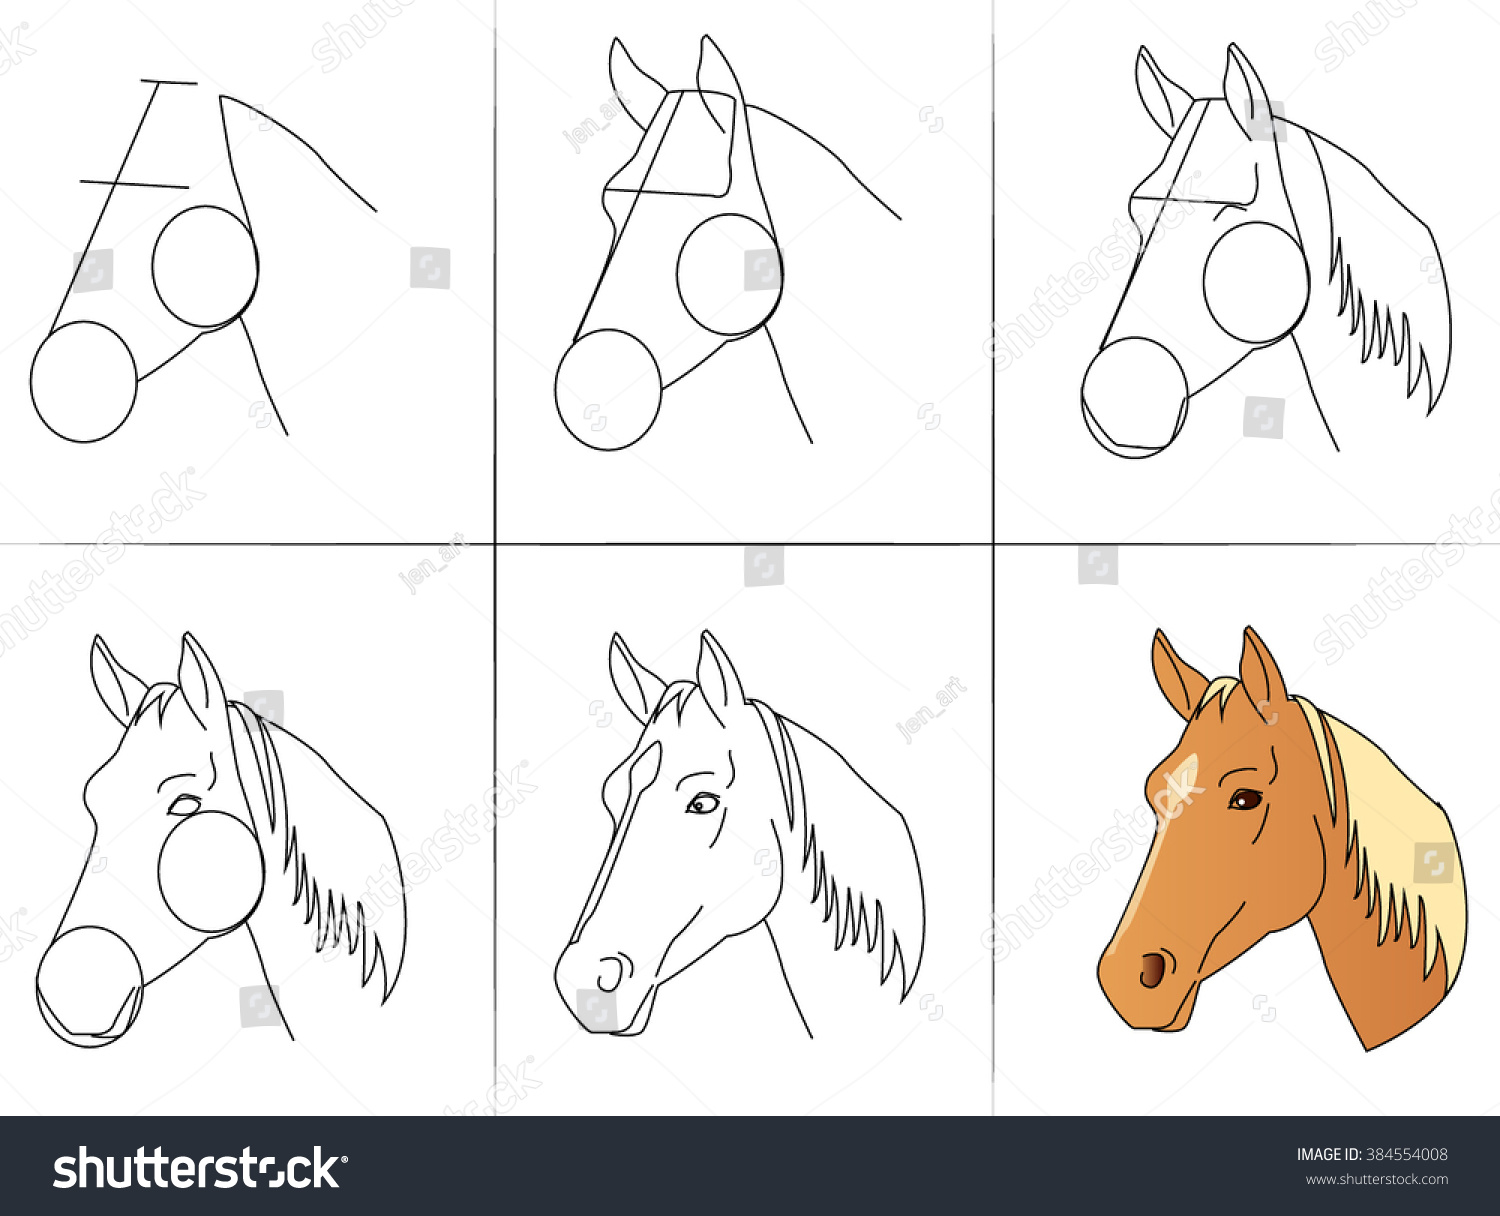 Six Steps Of Drawing A Horse Head From Line To Final Color Execution